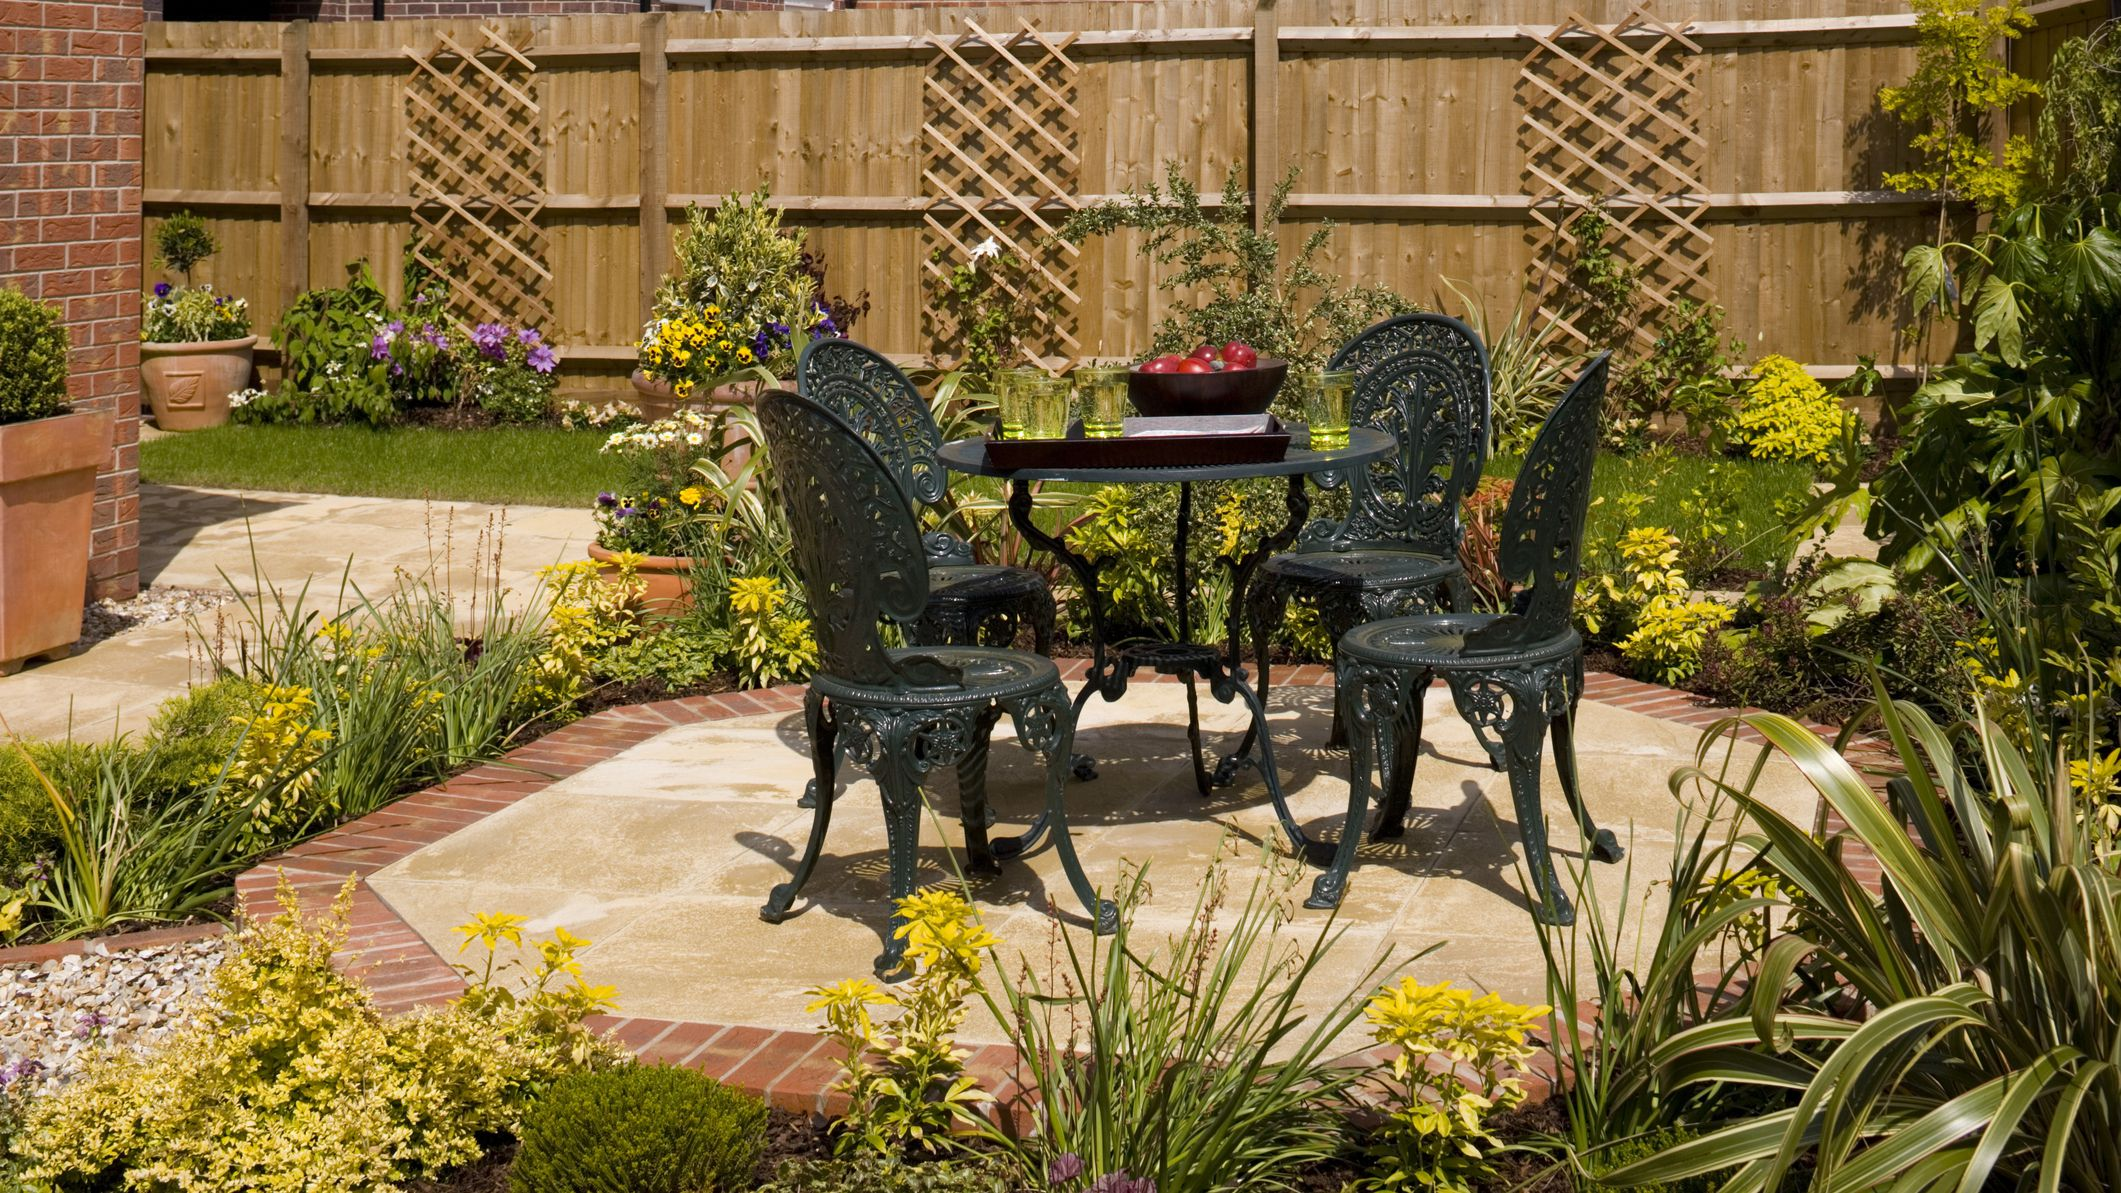 How To Clean Wrought Iron Furniture And Railings